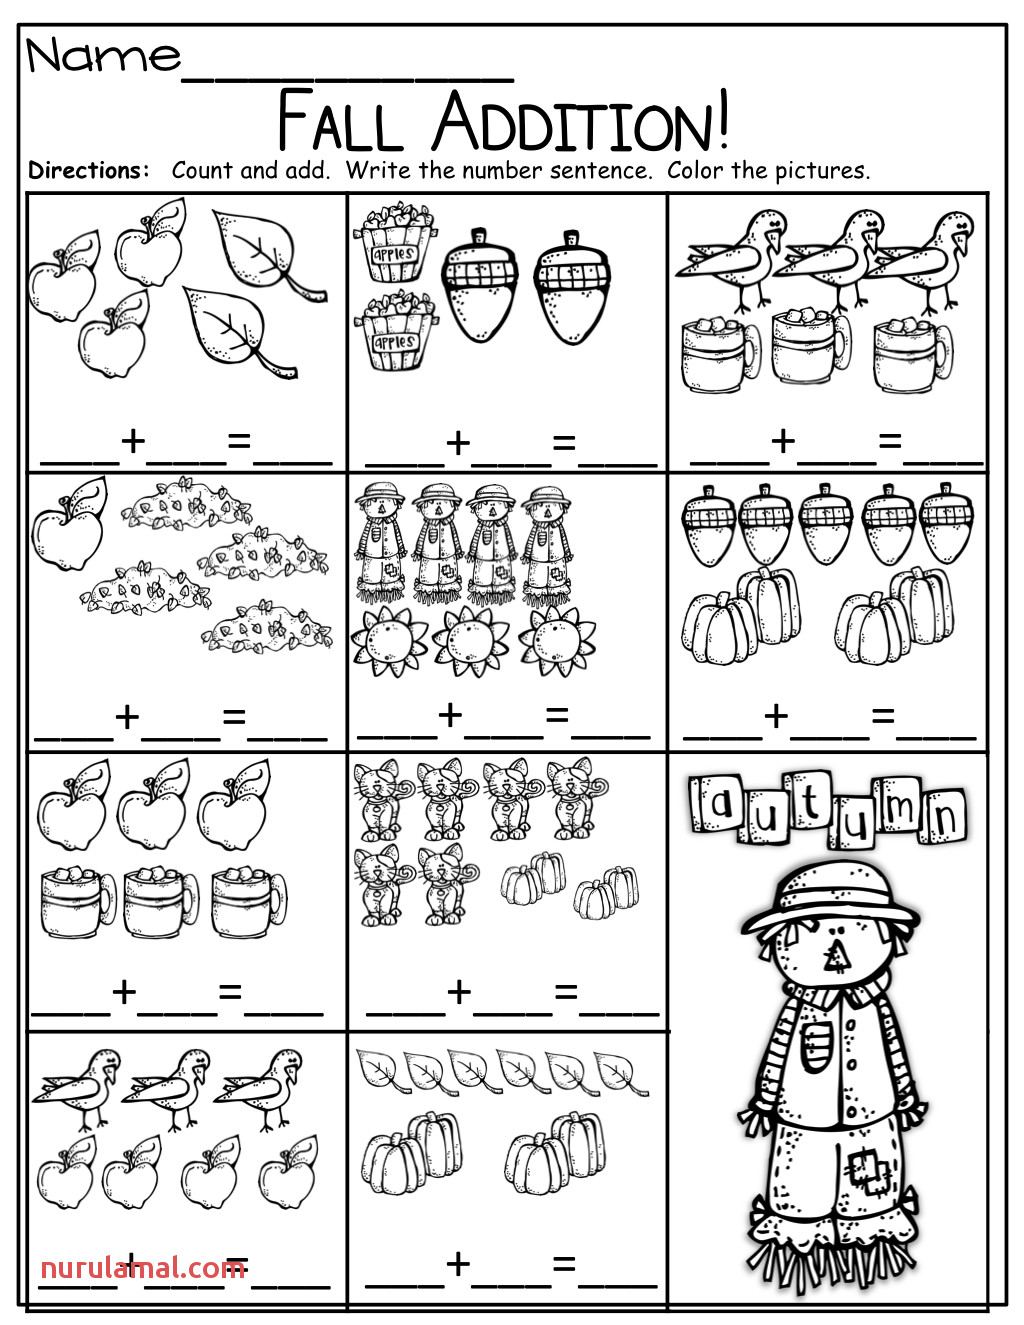 Worksheet Ideas Addition Worksheets forergarten Free Pdf